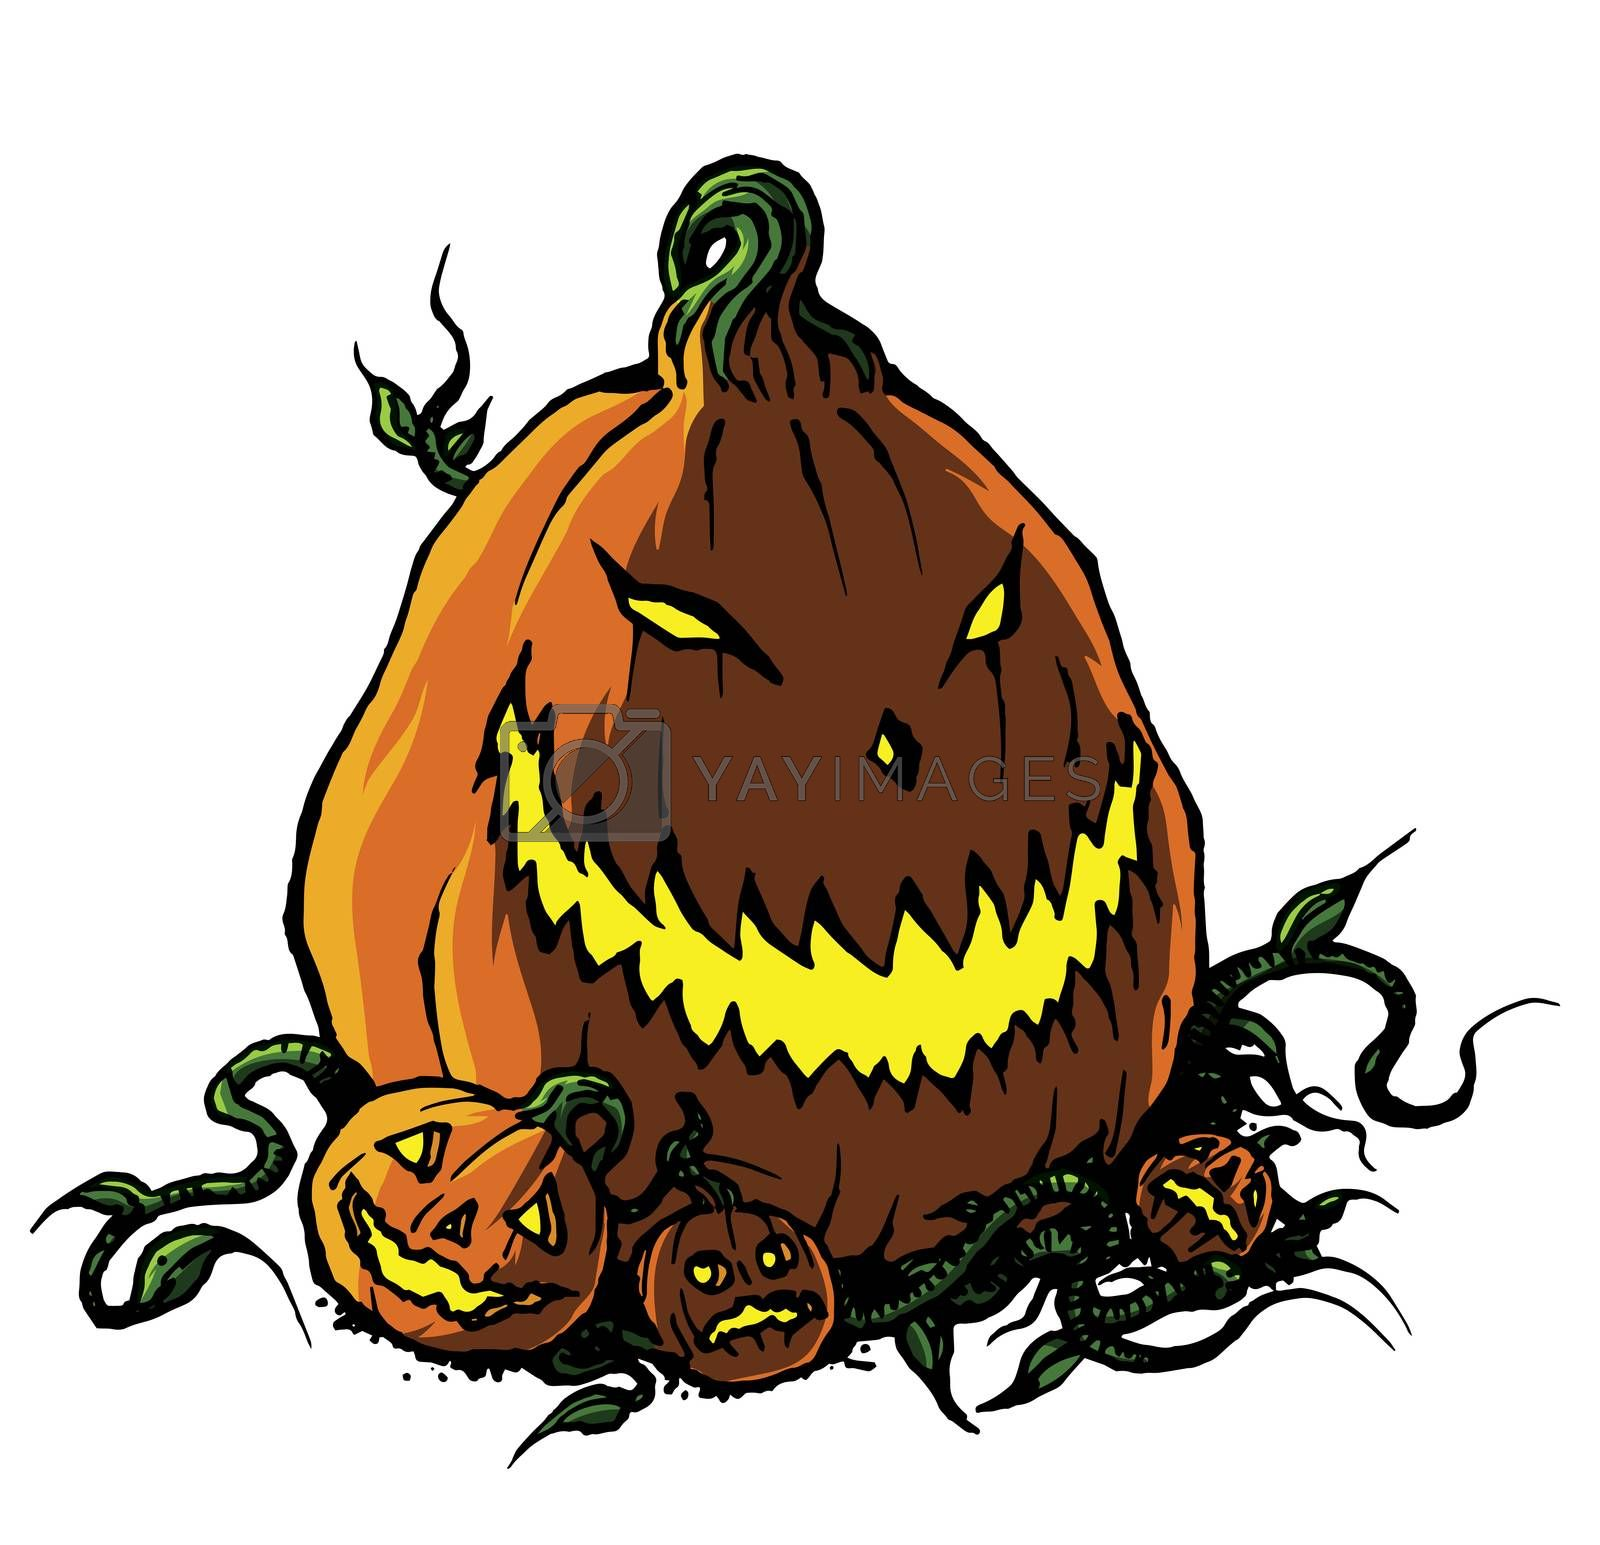 Scary Halloween Jack-o-Lantern Pumpkin in b&w line drawing illustration